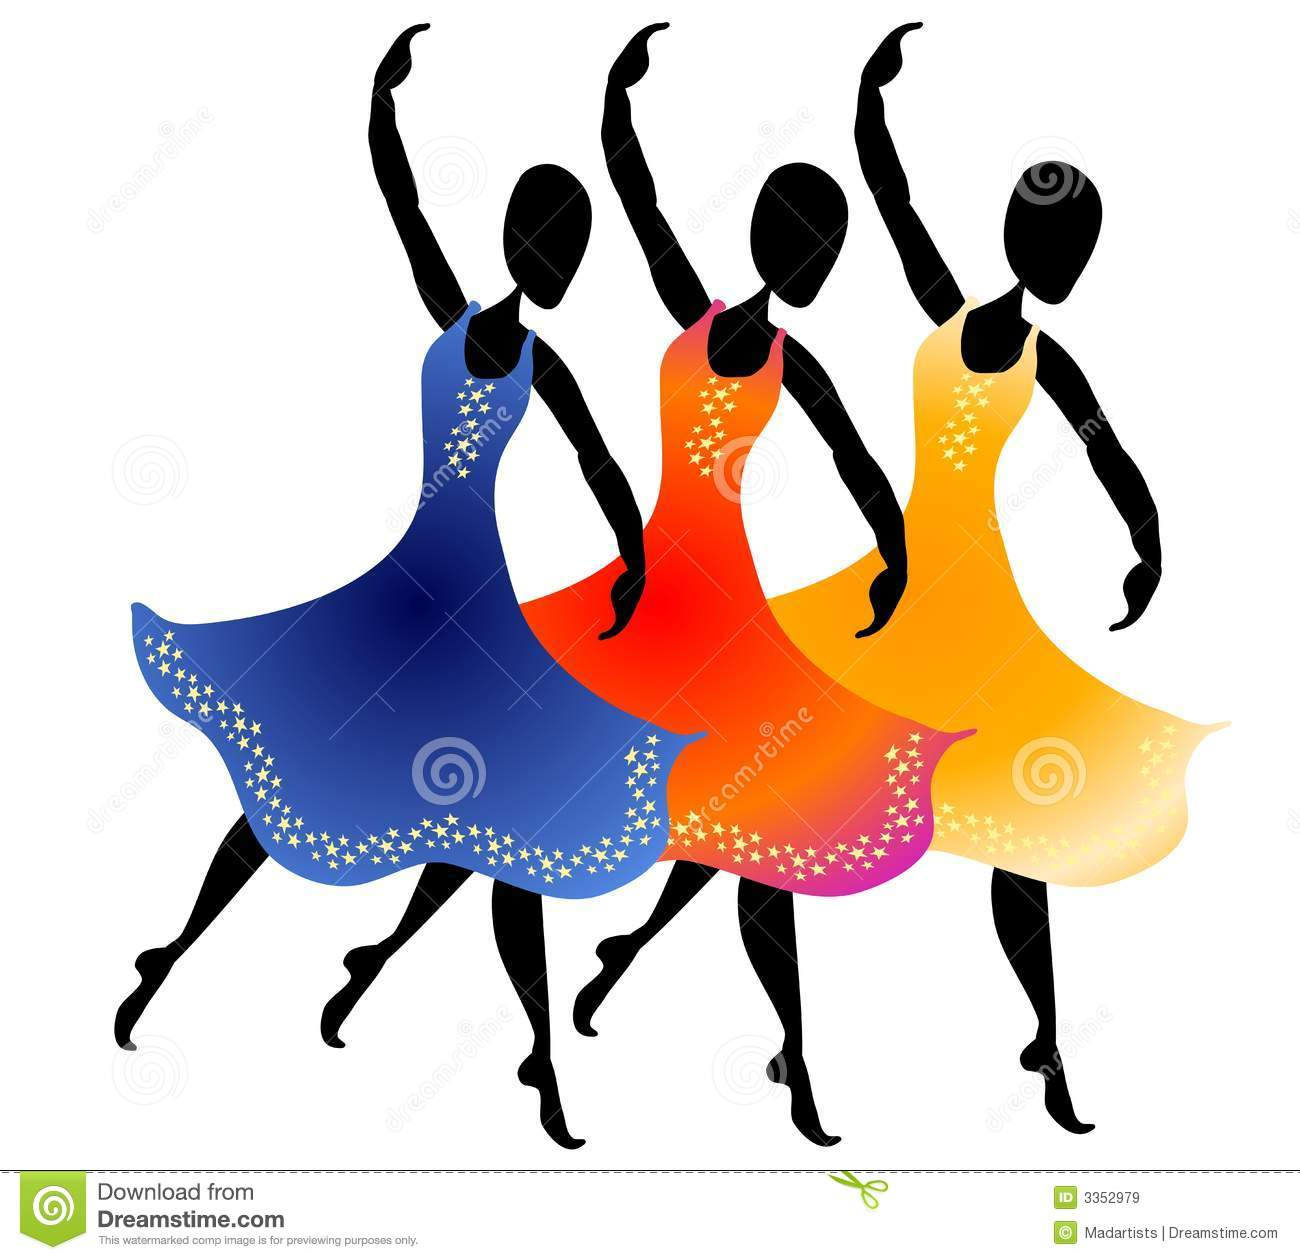 3 women dancing clip art stock illustration illustration of images rh dreamstime com clip art dance shoes clip art dancer silhouette